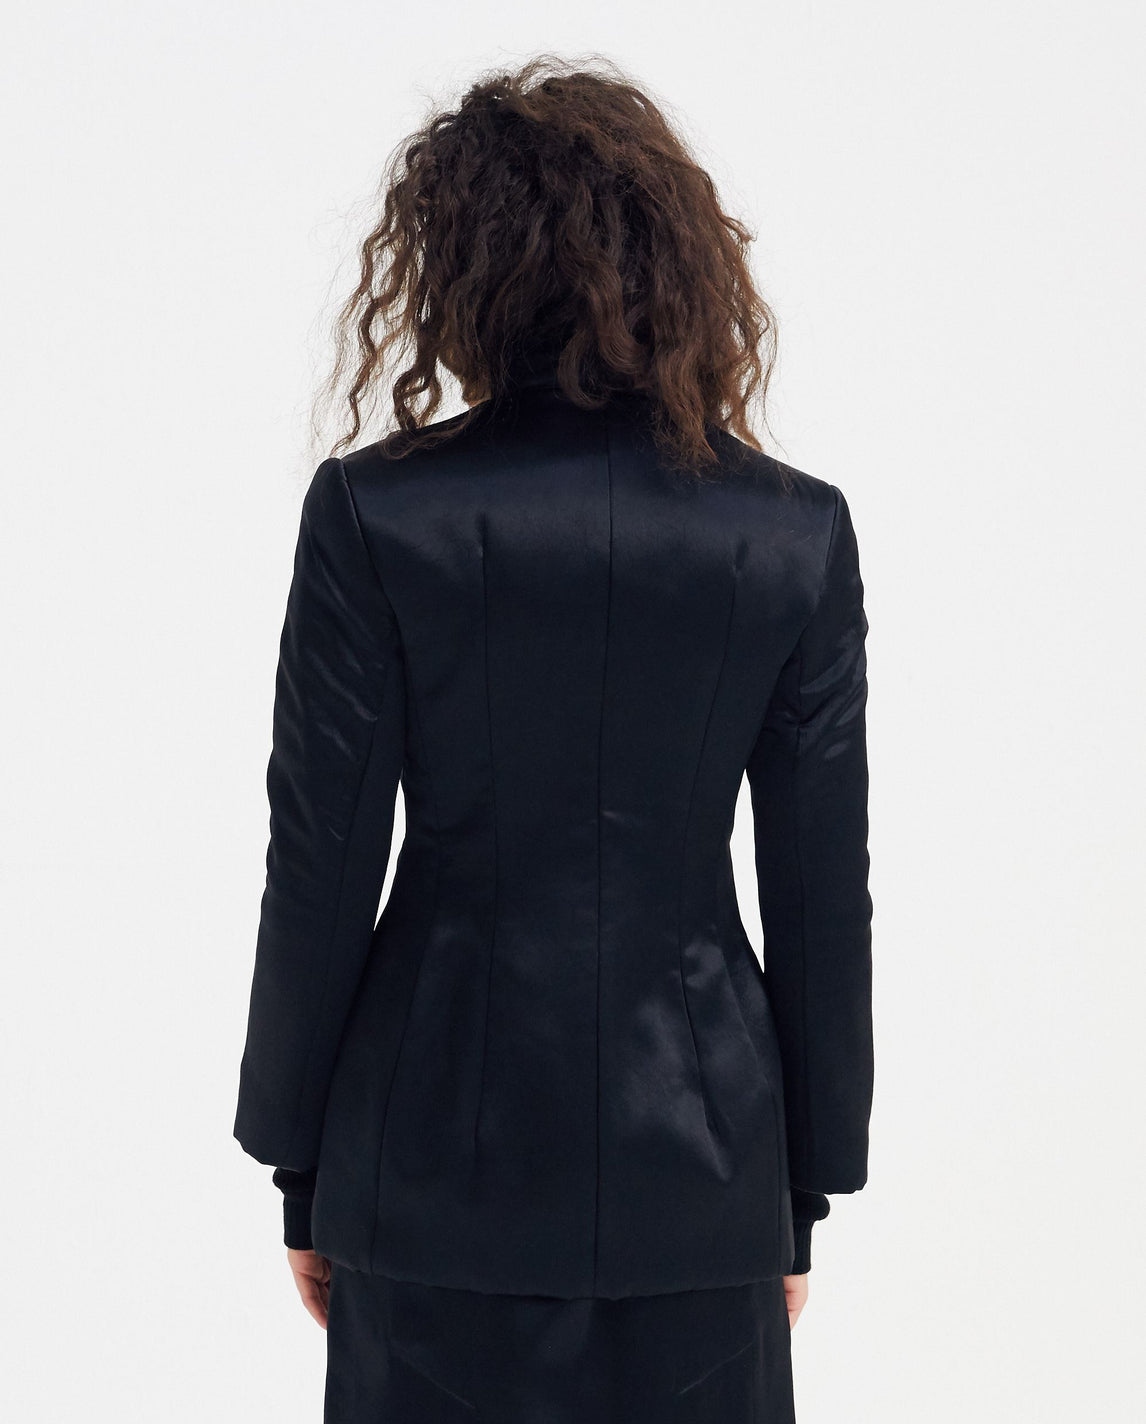 Lee Jacket - Black UNISEX SAMUEL GUI YANG